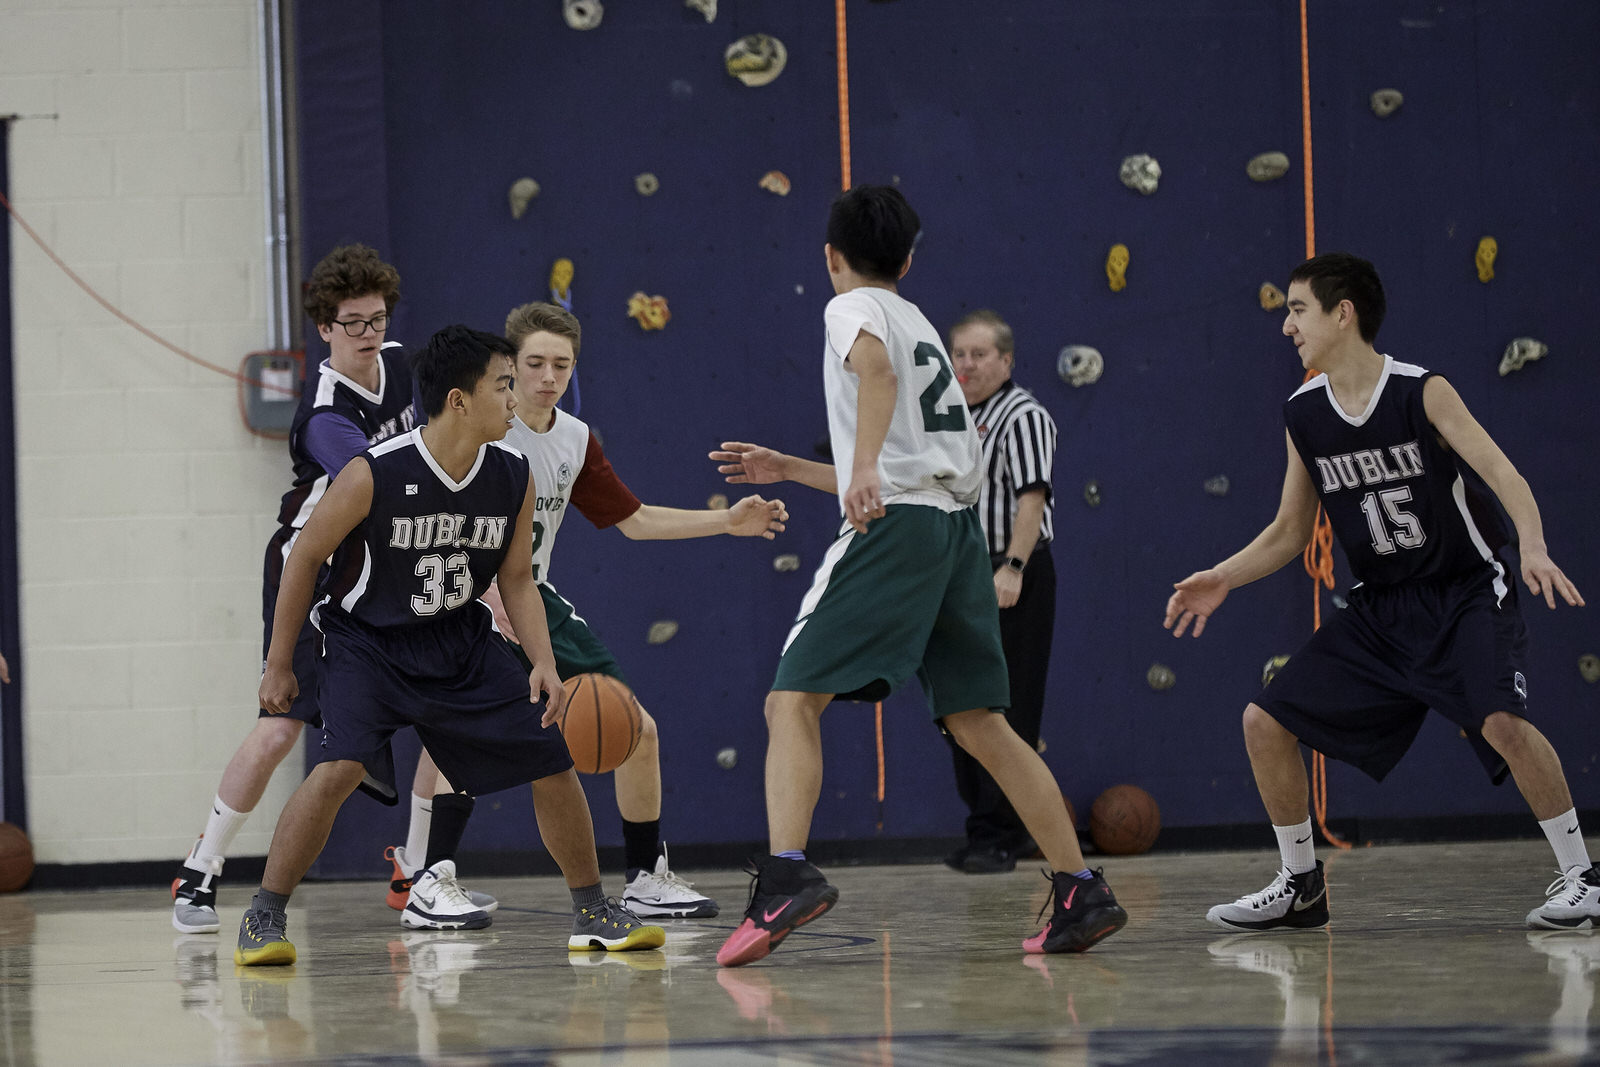 Dublin JV Boys Basketball vs High Mowing School - Jan 26 2019 - 0126.jpg